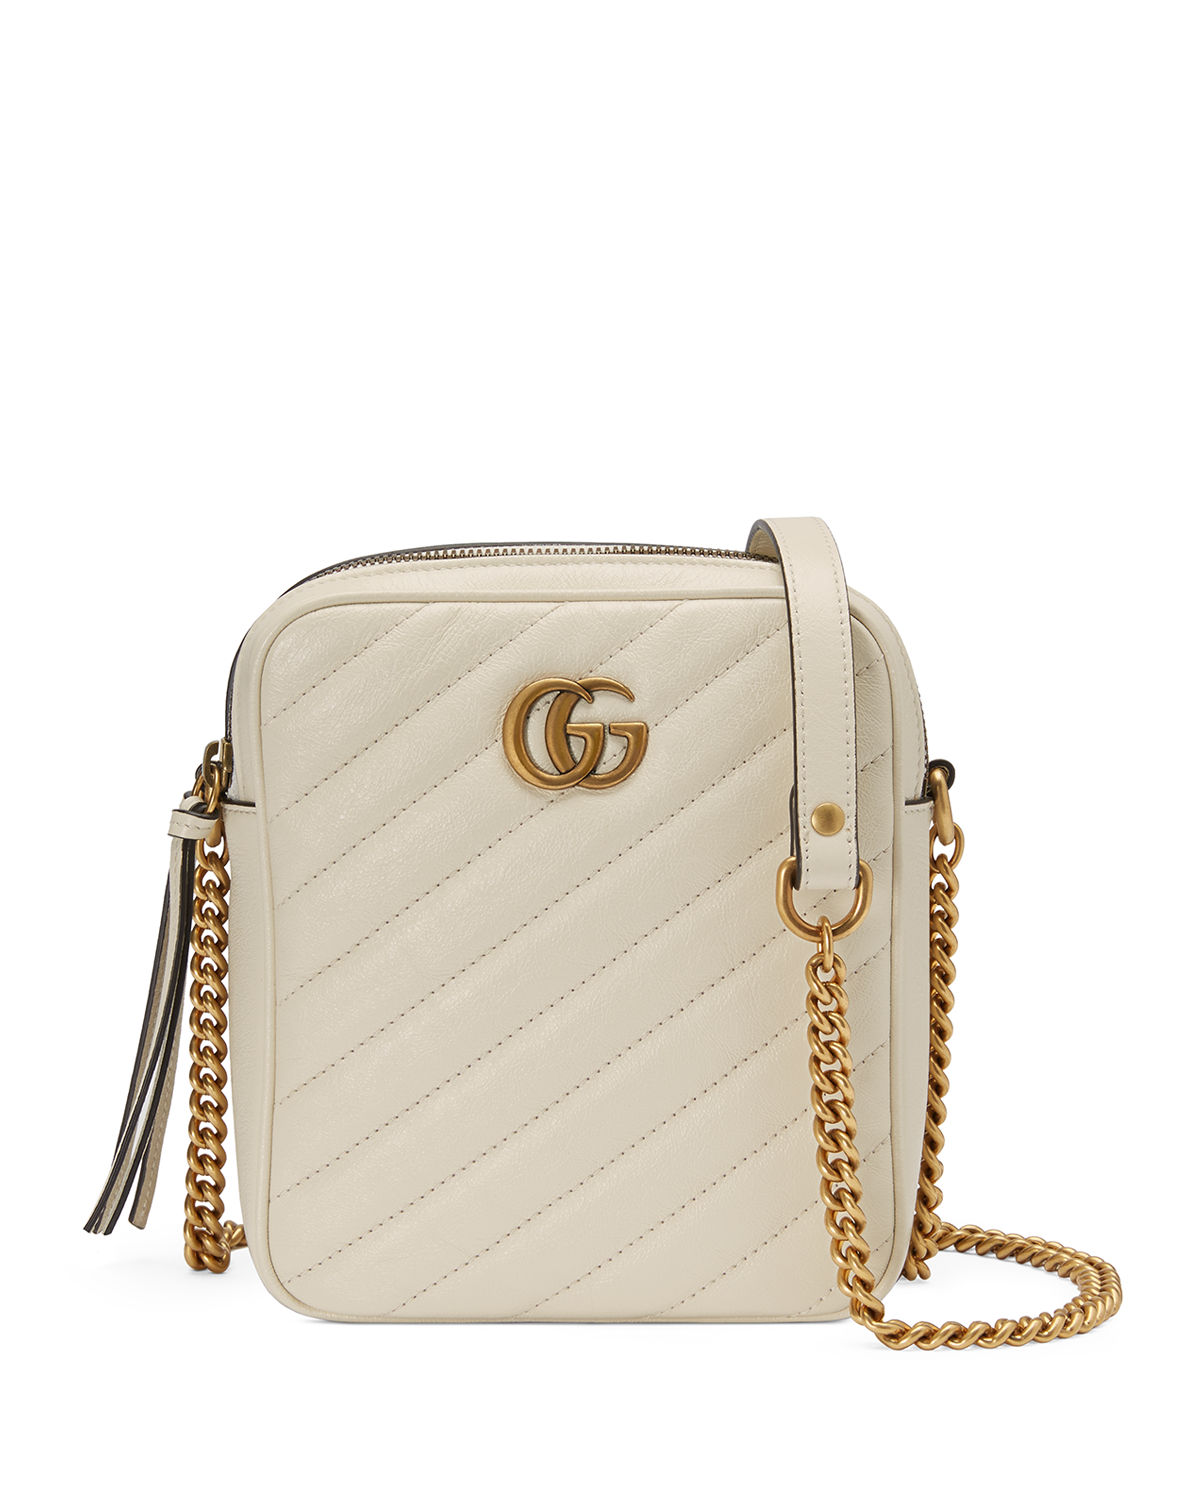 bfb8142aaee4 Gucci Gg Marmont Tall Chevron Leather Crossbody Bag